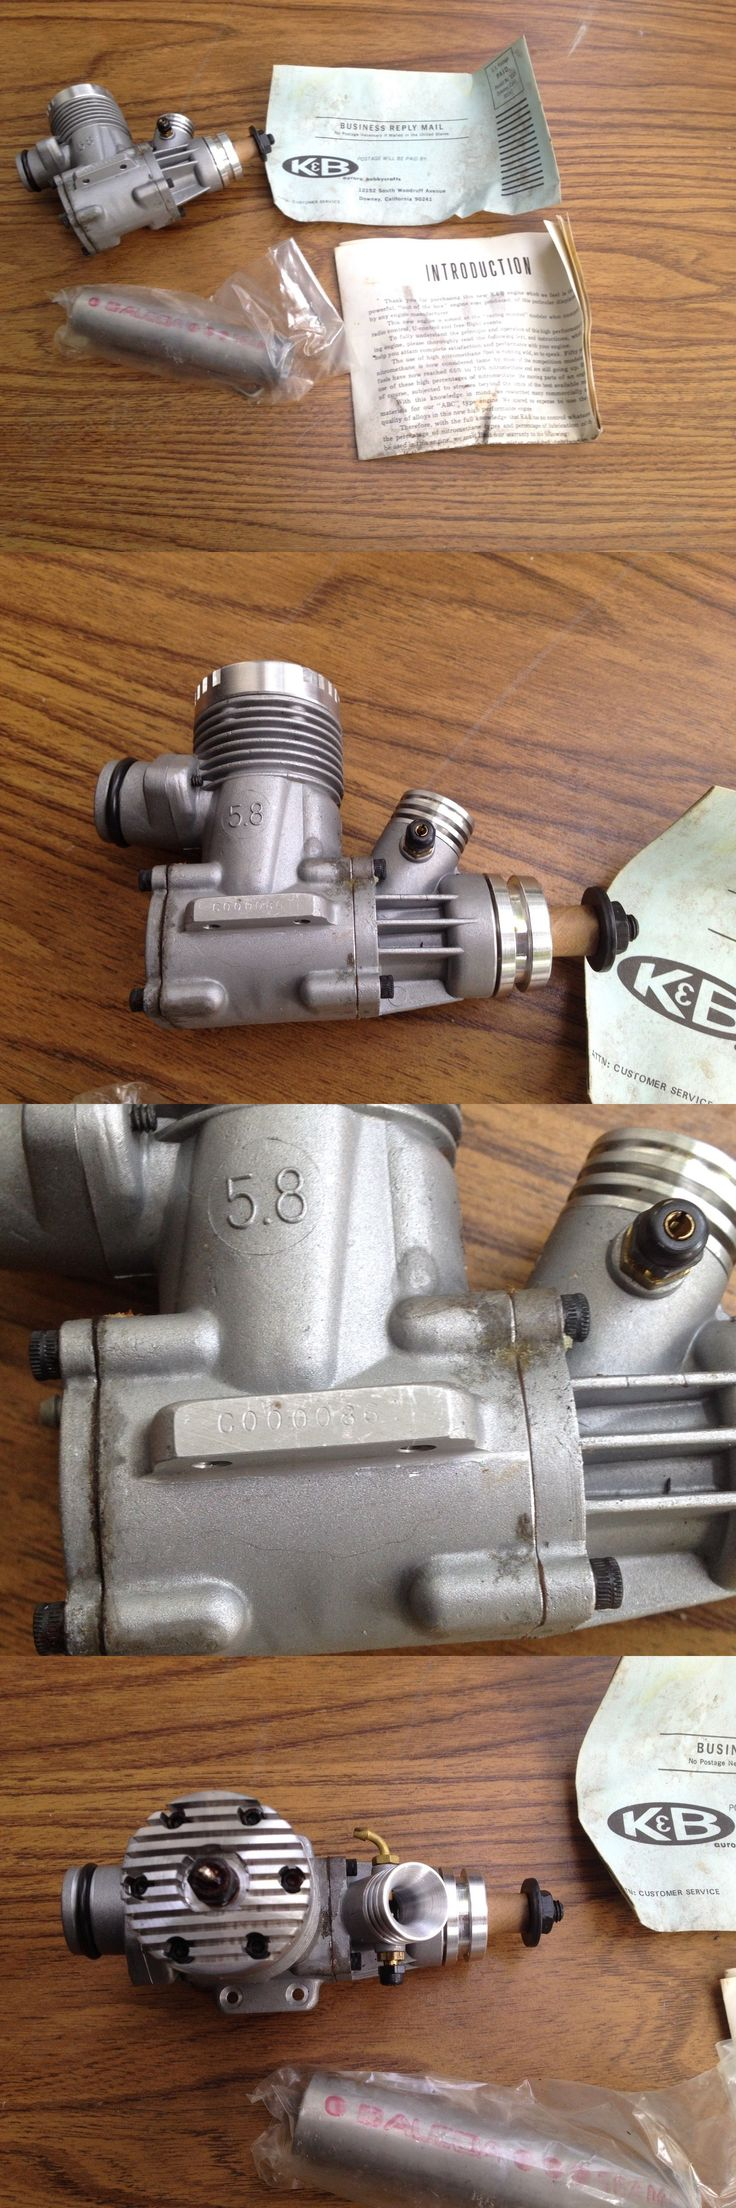 Other RC Parts and Accs 182213: Rare Vintage New Sealed K B 5.8 Cf Lee Mfg Rc Model Airplane Engine Motor #861 -> BUY IT NOW ONLY: $125 on eBay!